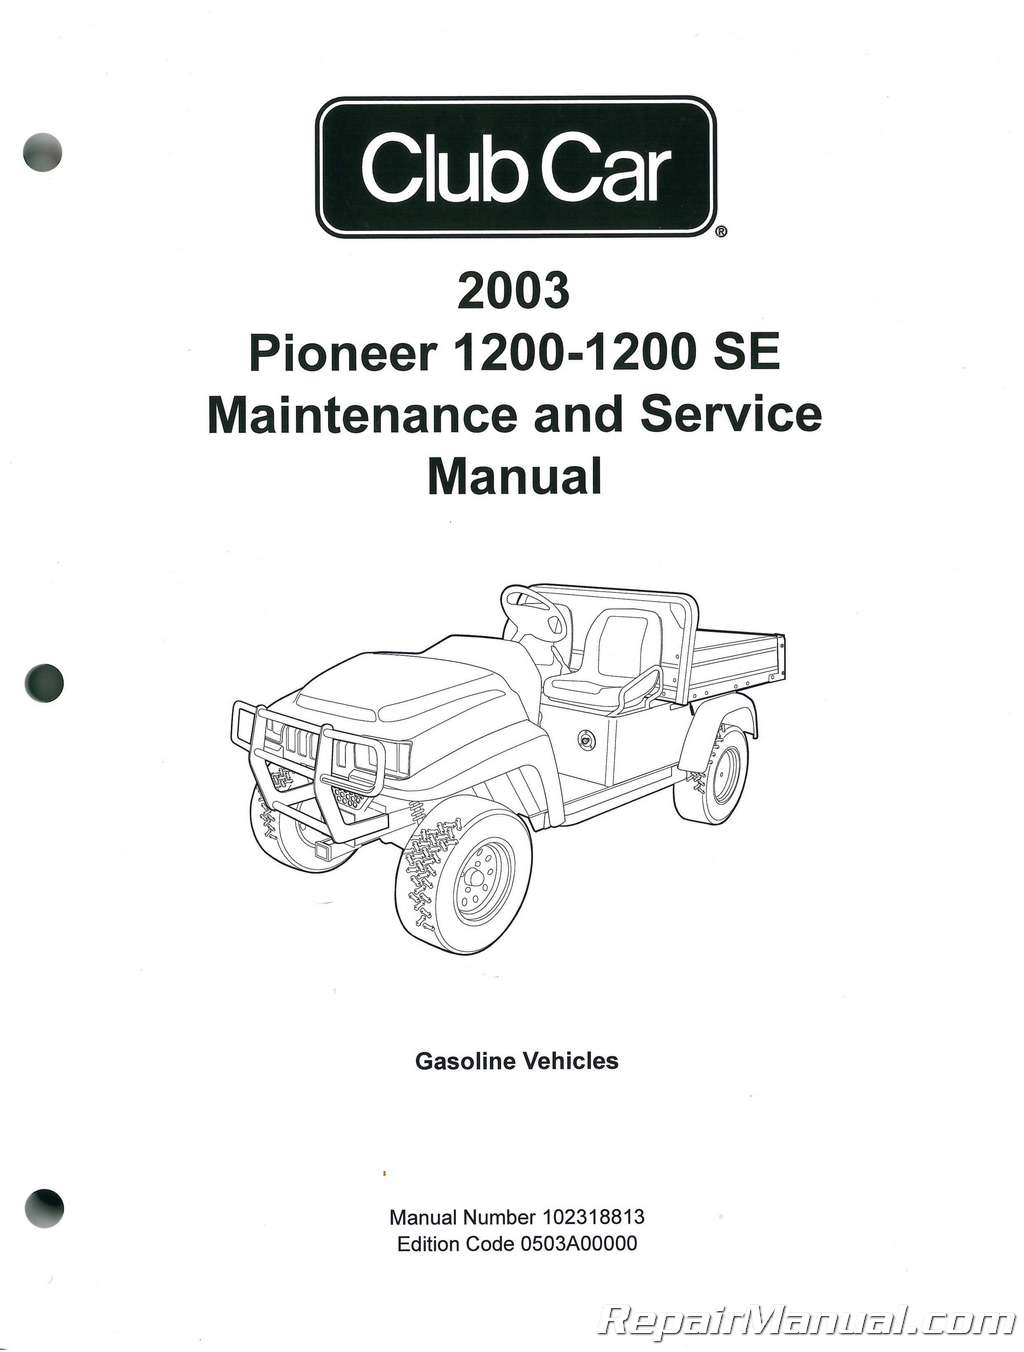 2003 Club Car Pioneer 1200 1200SE Service Maintenance Manual